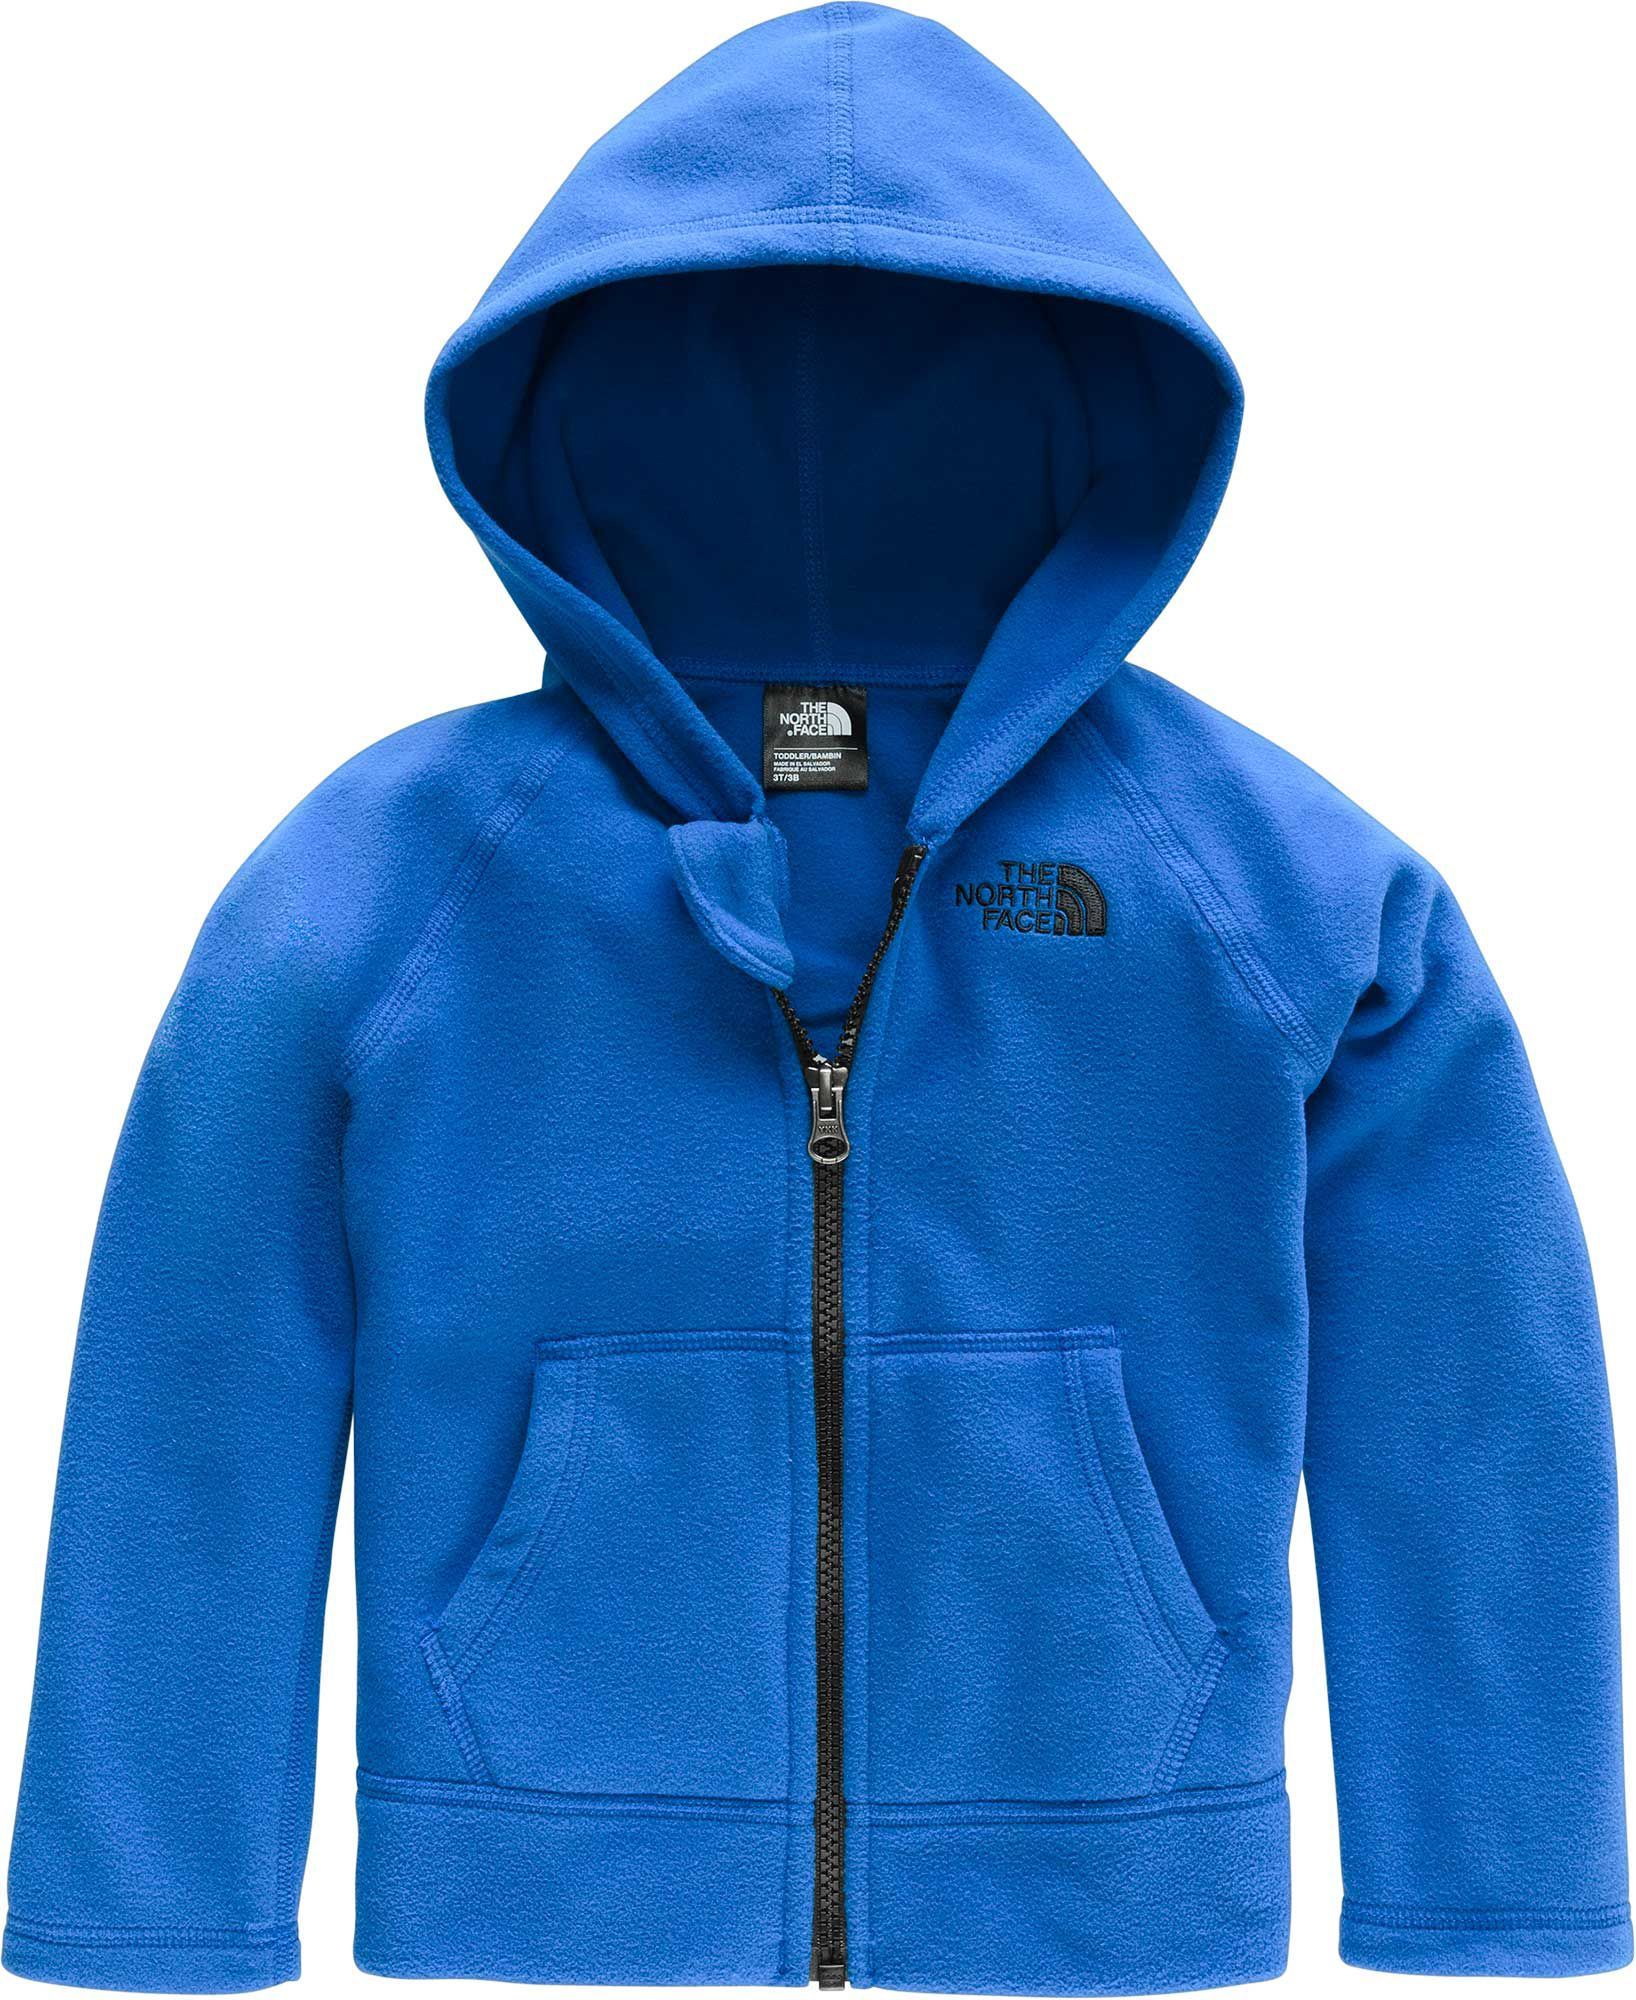 2cfb102c3 The North Face Toddler Boys' Glacier Fleece Jacket | Products | Full ...